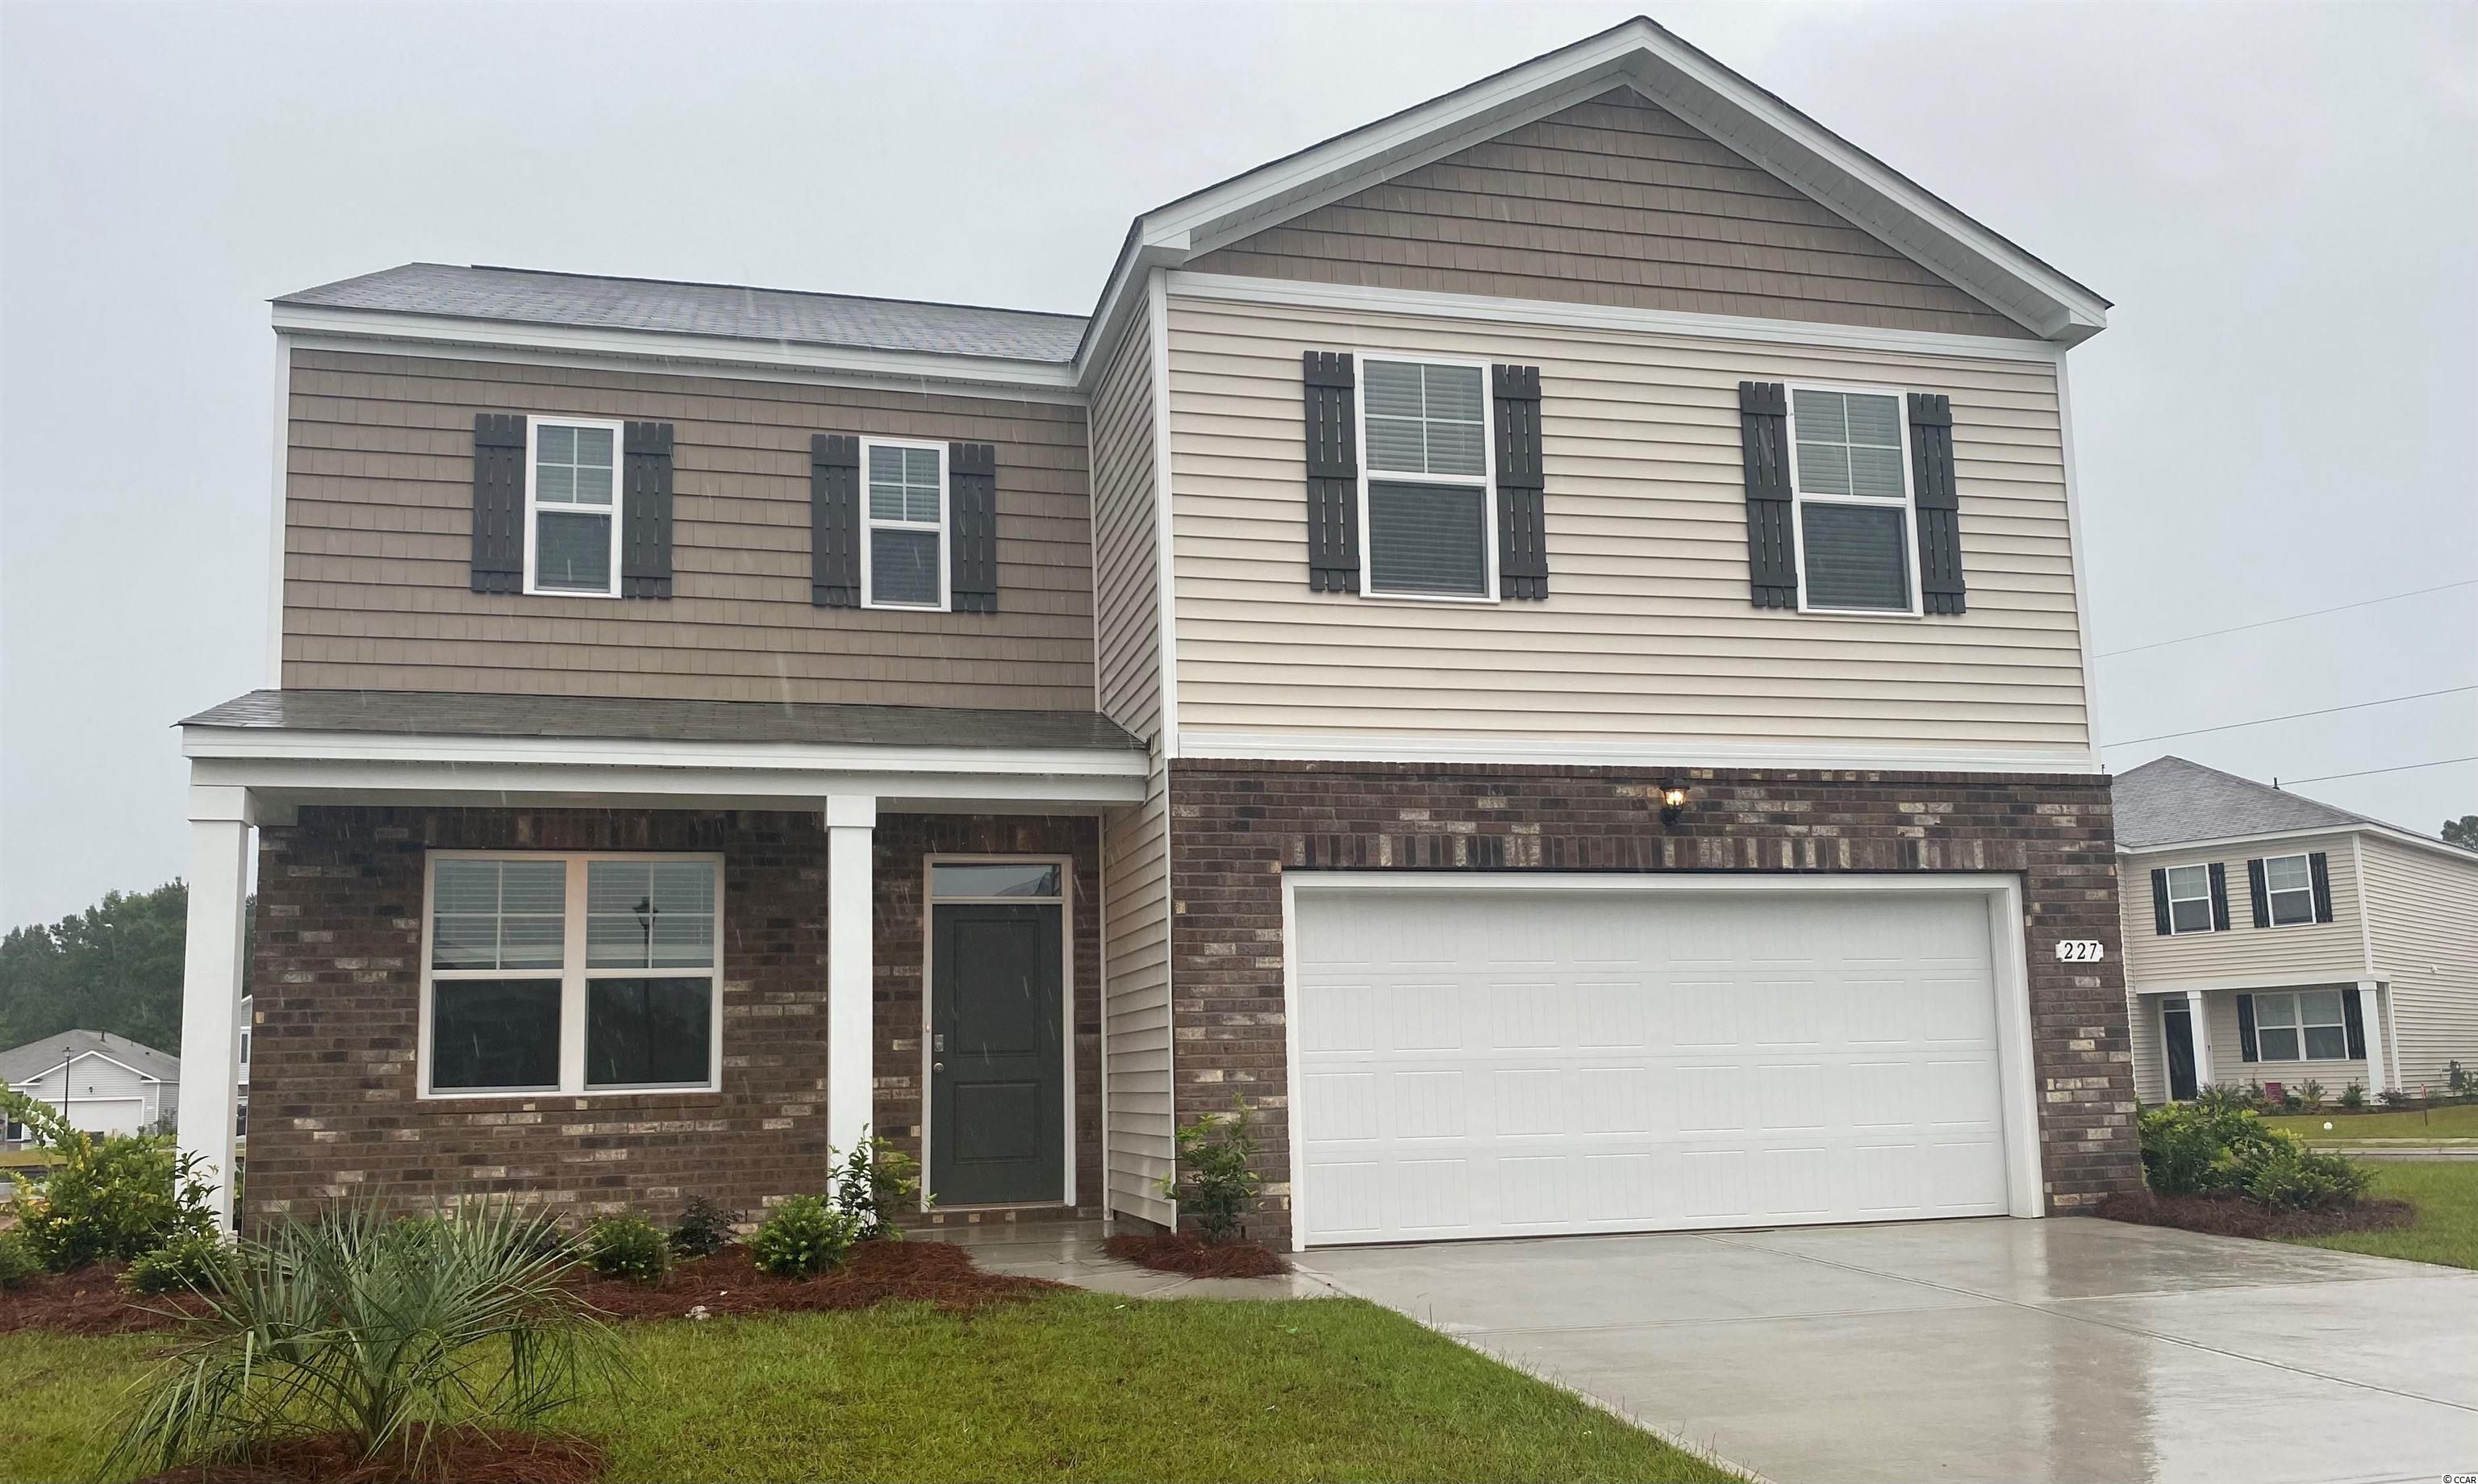 Oak Arbor is a brand new natural gas community conveniently located off of Highway 707 in Murrells Inlet close to shopping, schools, and the famous Murrells Inlet Marsh Walk. This spacious two-story home has everything you are looking for! With a large, open concept great room and kitchen you will have plenty of room to entertain. White painted cabinetry, granite countertops, large island with breakfast bar, stainless Whirlpool appliances, and a walk-in pantry. The first floor also features 9' ceilings and a great size study with French doors if you are looking for a home office space! Your primary bedroom suite awaits upstairs with huge walk-in closet and private bath with double vanity, 5 ft. shower, and linen closet. The laundry room is also conveniently located upstairs near all of the bedrooms! This home is on a corner homesite with pond views and will also feature an inviting front porch and rear covered porch. Tankless gas water heater, two-car garage with garage door opener, and our QuickTie framing system also included. It gets better- this is America's Smart Home! Ask an agent today about our industry leading smart home technology package that is included in each of our new homes.   *Photos are of a similar Galen home. (Home and community information, including pricing, included features, terms, availability and amenities, are subject to change prior to sale at any time without notice or obligation. Square footages are approximate. Pictures, photographs, colors, features, and sizes are for illustration purposes only and will vary from the homes as built. Equal housing opportunity builder.)